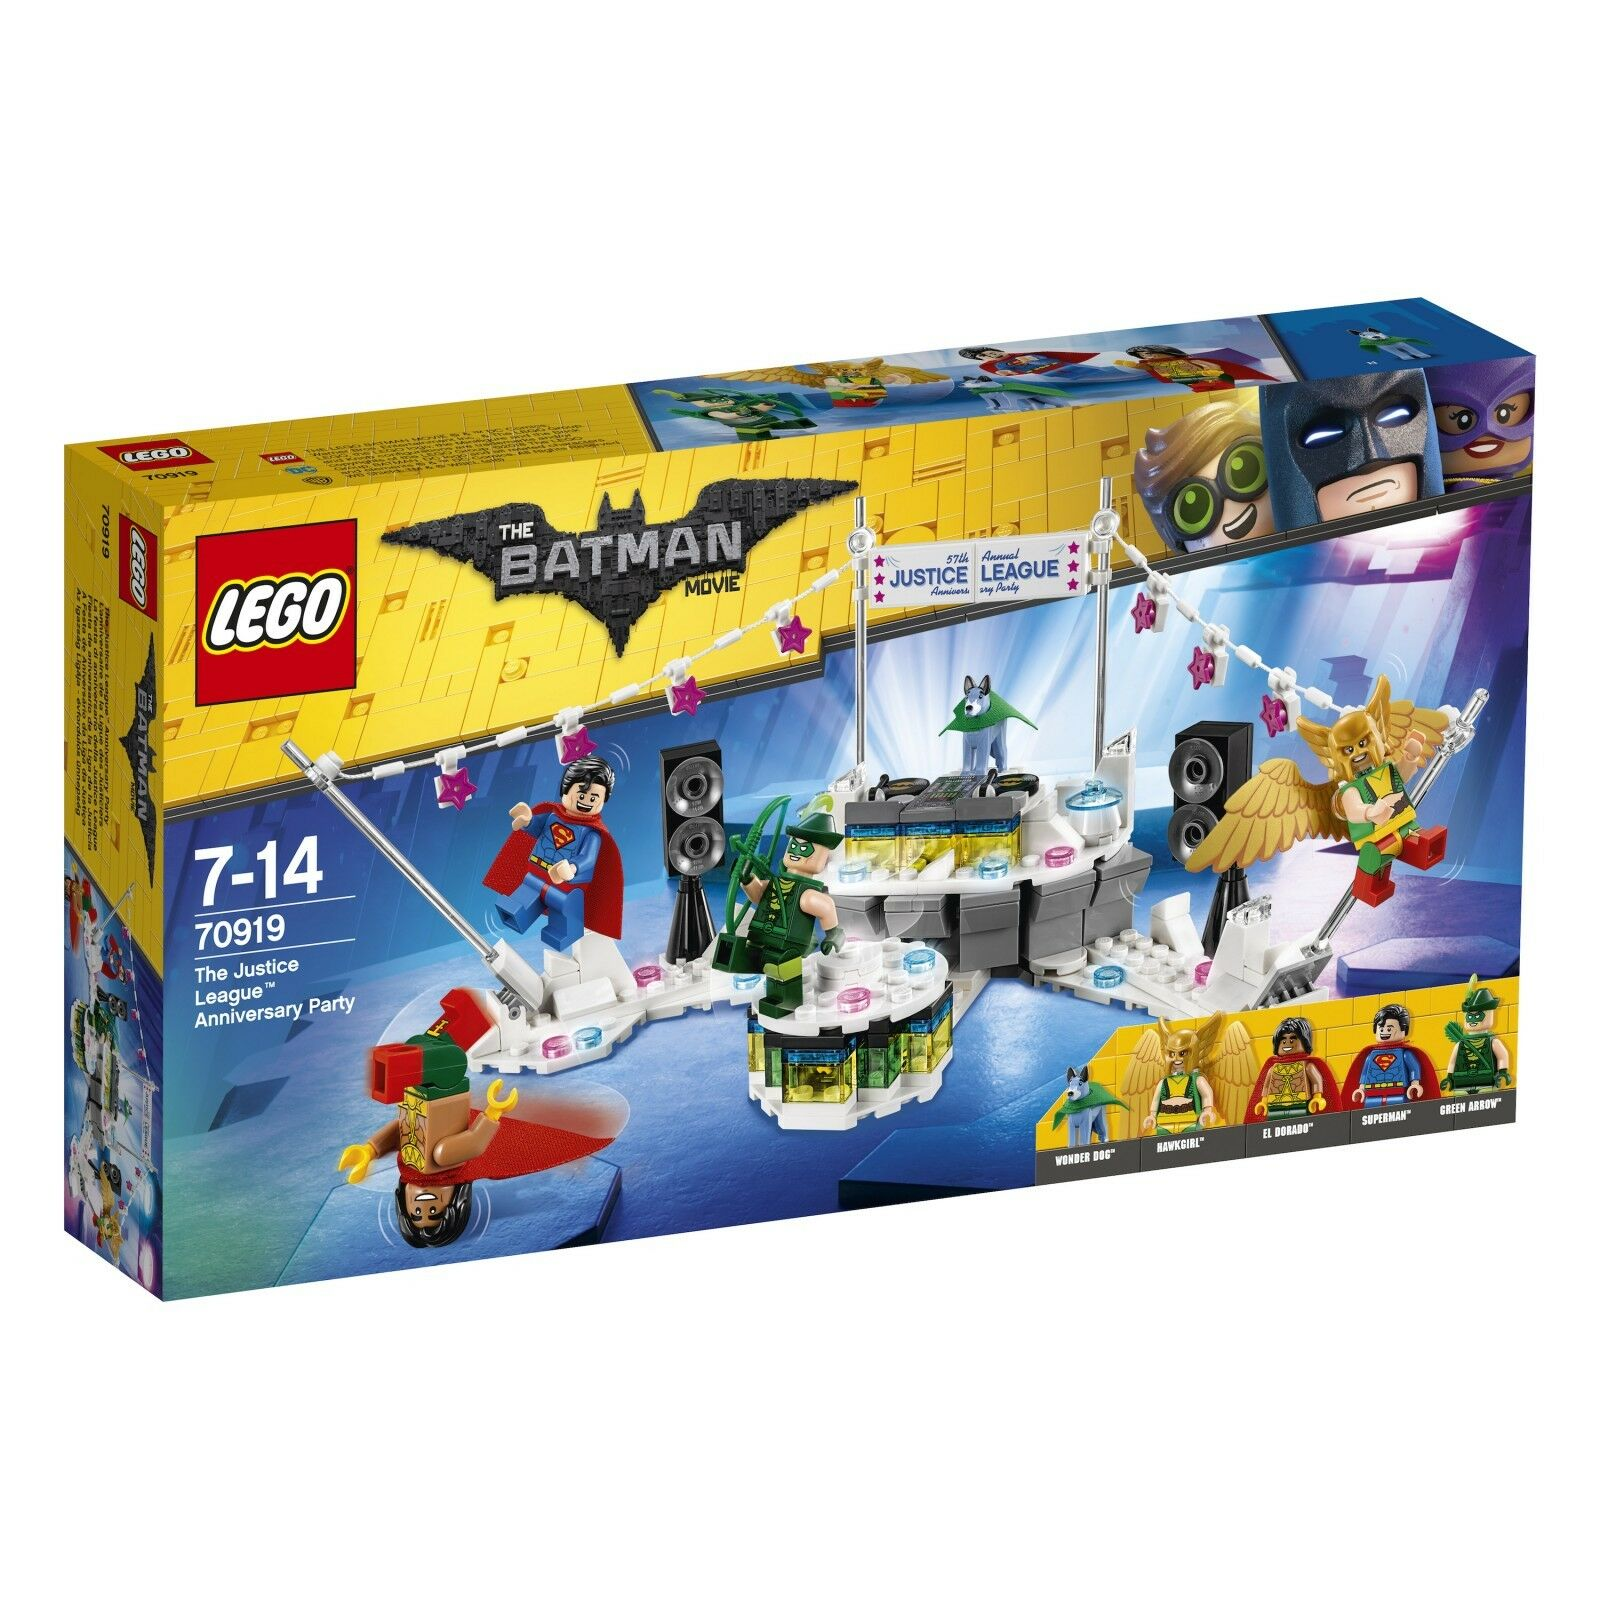 THE LEGO® BATMAN MOVIE 70919 The Justice League™ Anniversary Party NEU OVP NEW